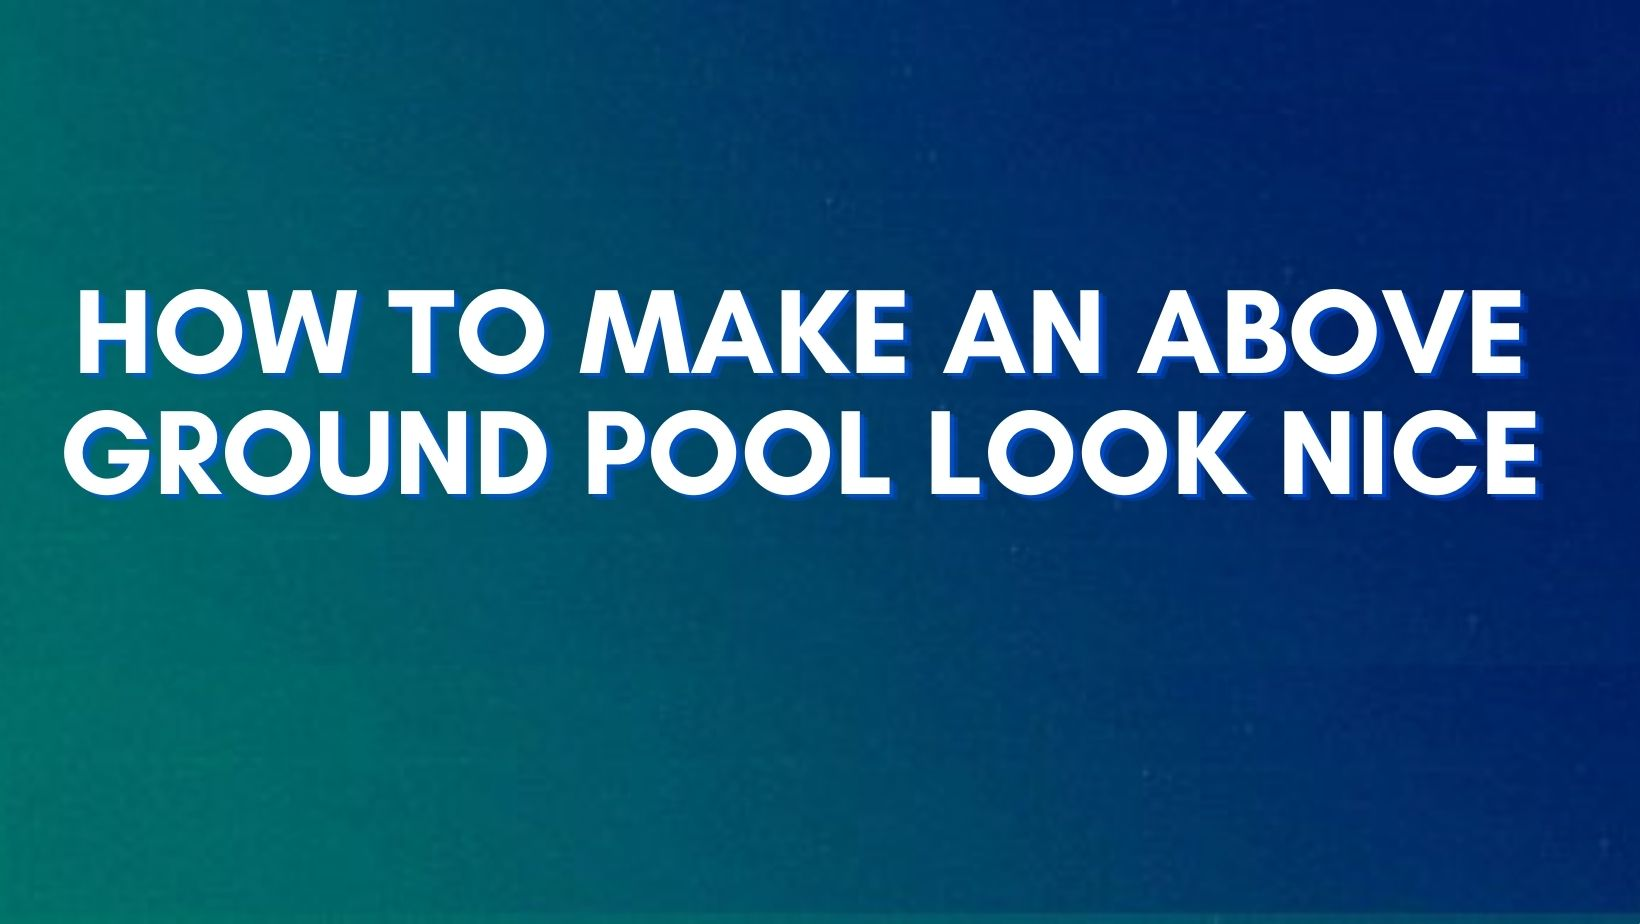 Create your above ground pool in a stylish way